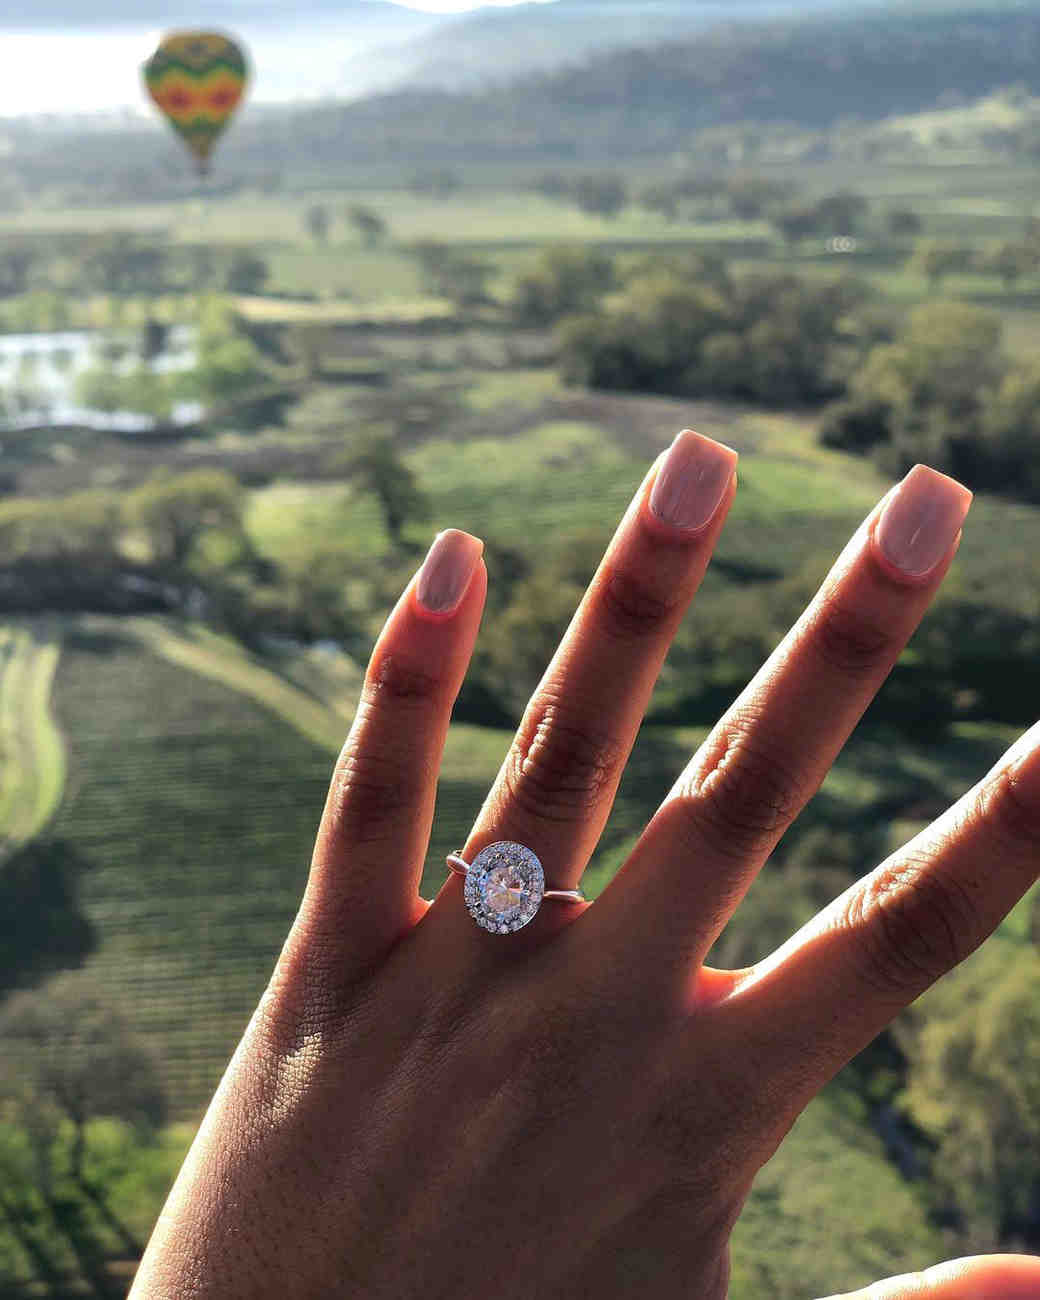 engagement ring selfie hot air balloon ride